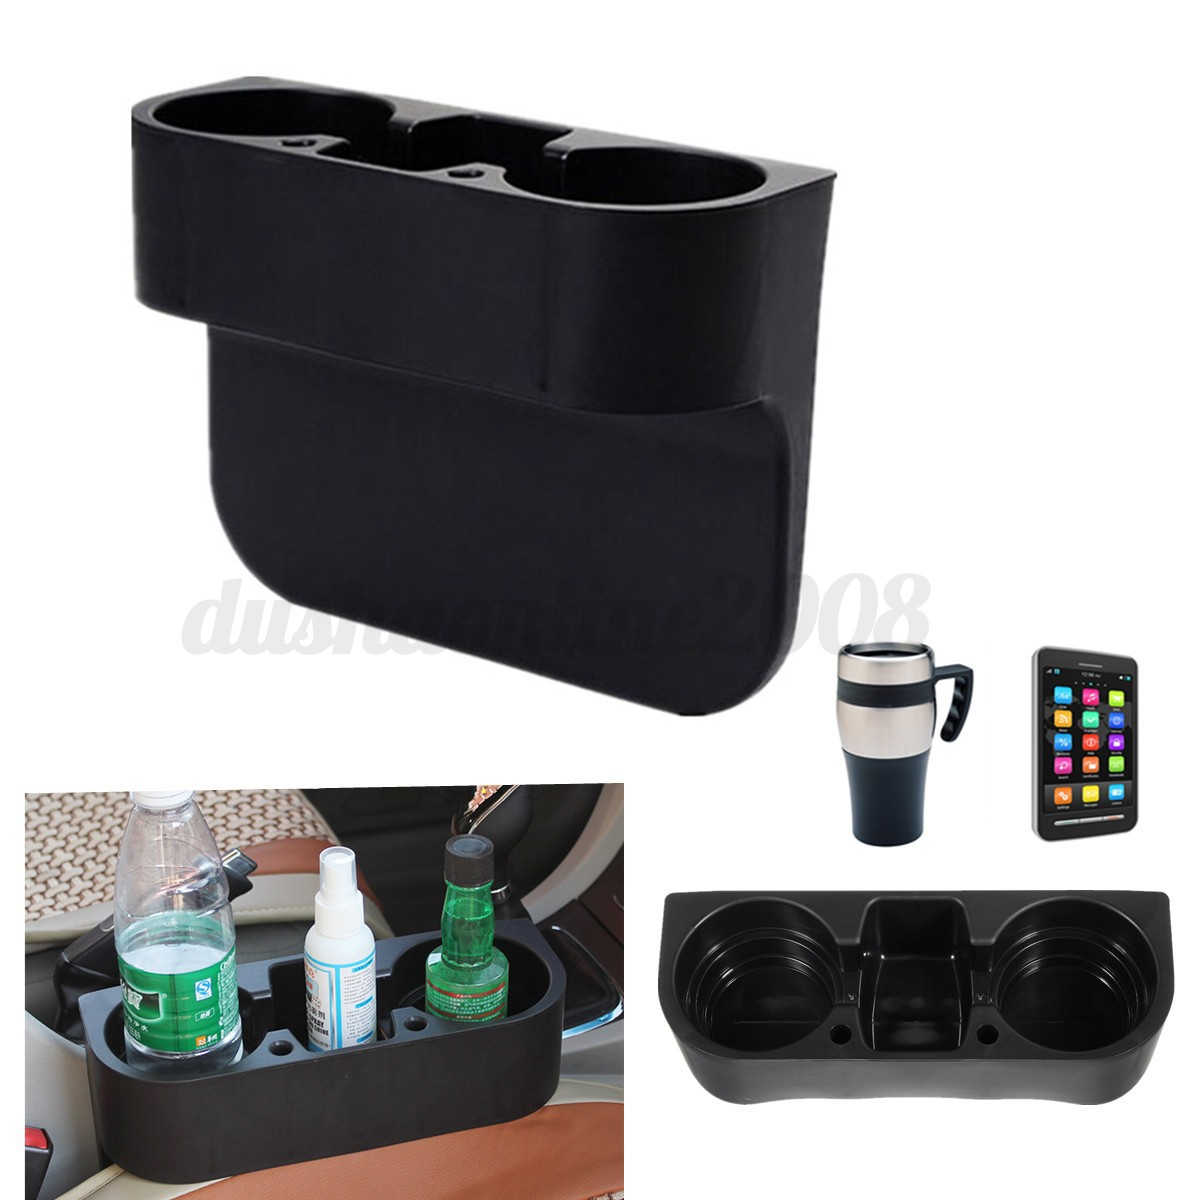 universel camion voiture coffret siege rangement stockage boite support mug sac eur 6 74. Black Bedroom Furniture Sets. Home Design Ideas